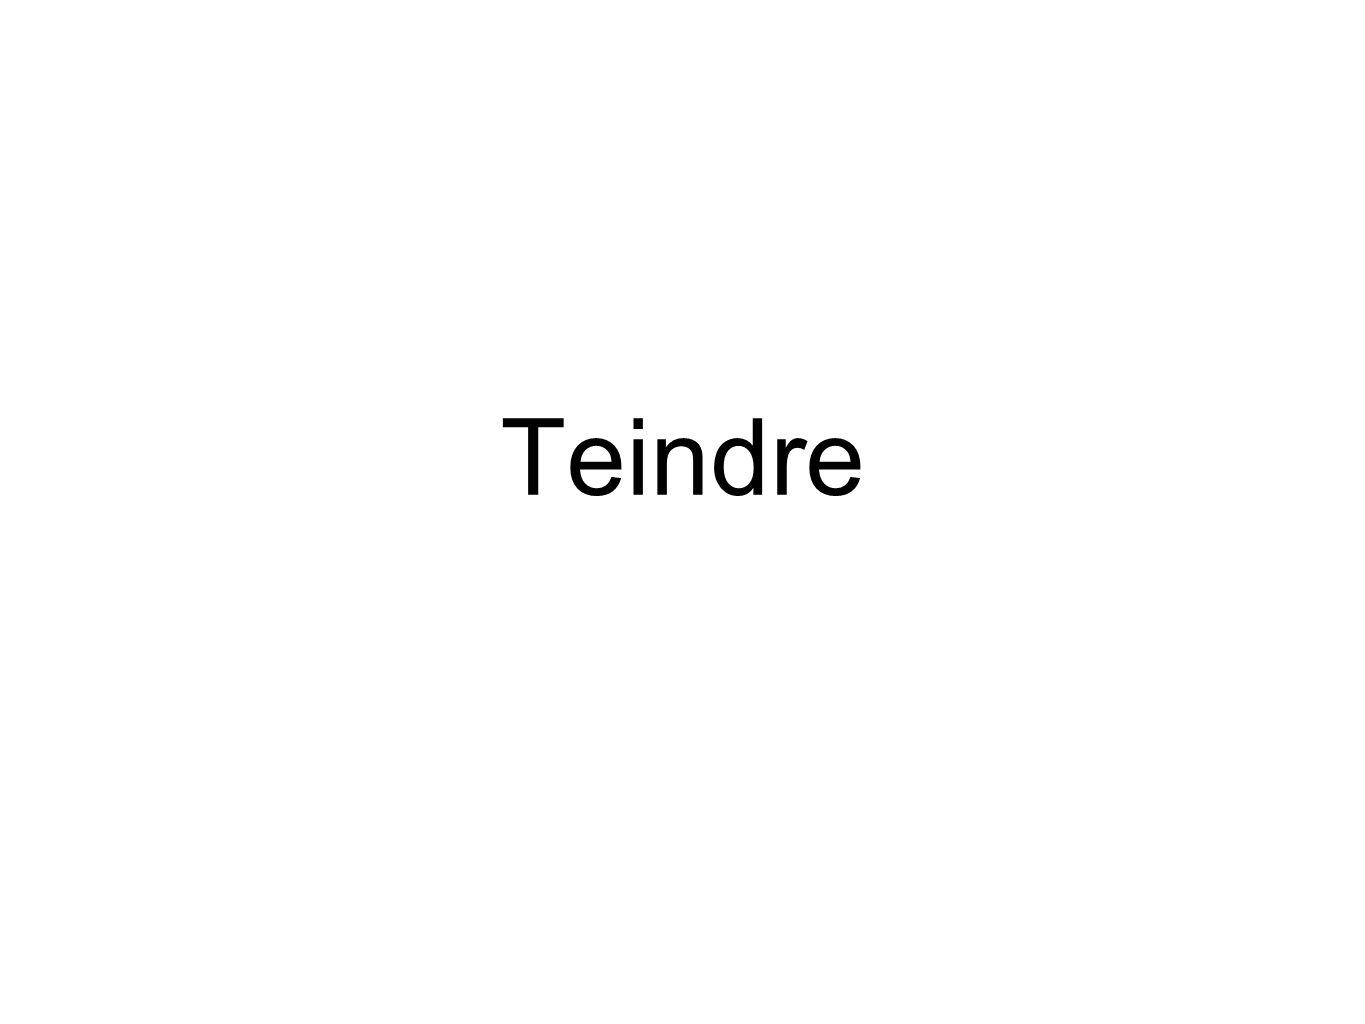 Teindre